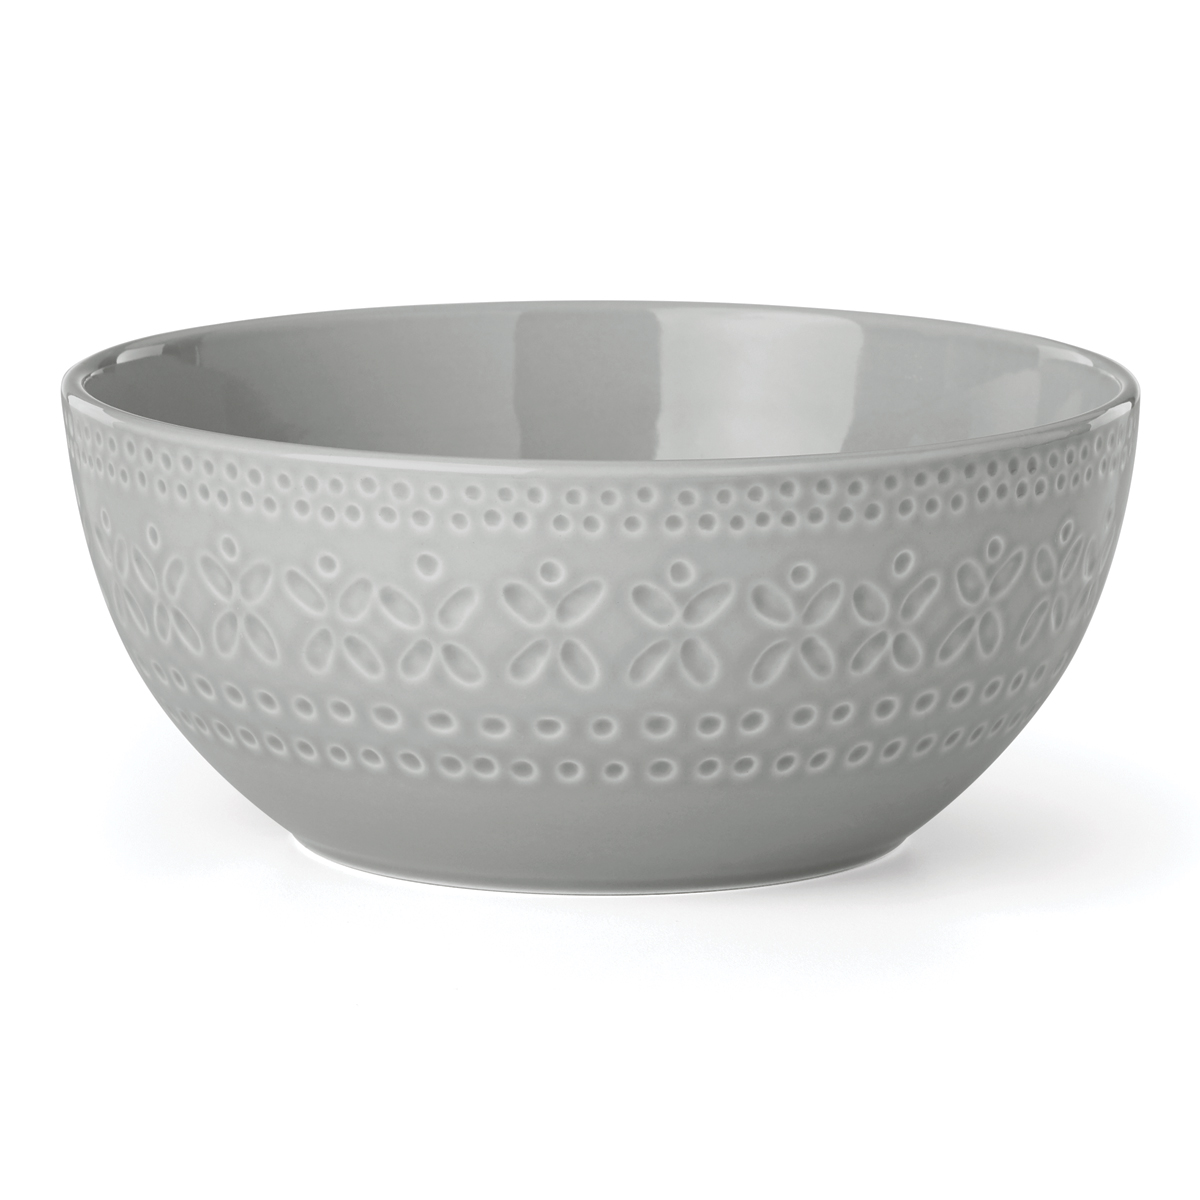 Kate Spade China by Lenox, Stoneware Willow Drive Grey Serve Bowl